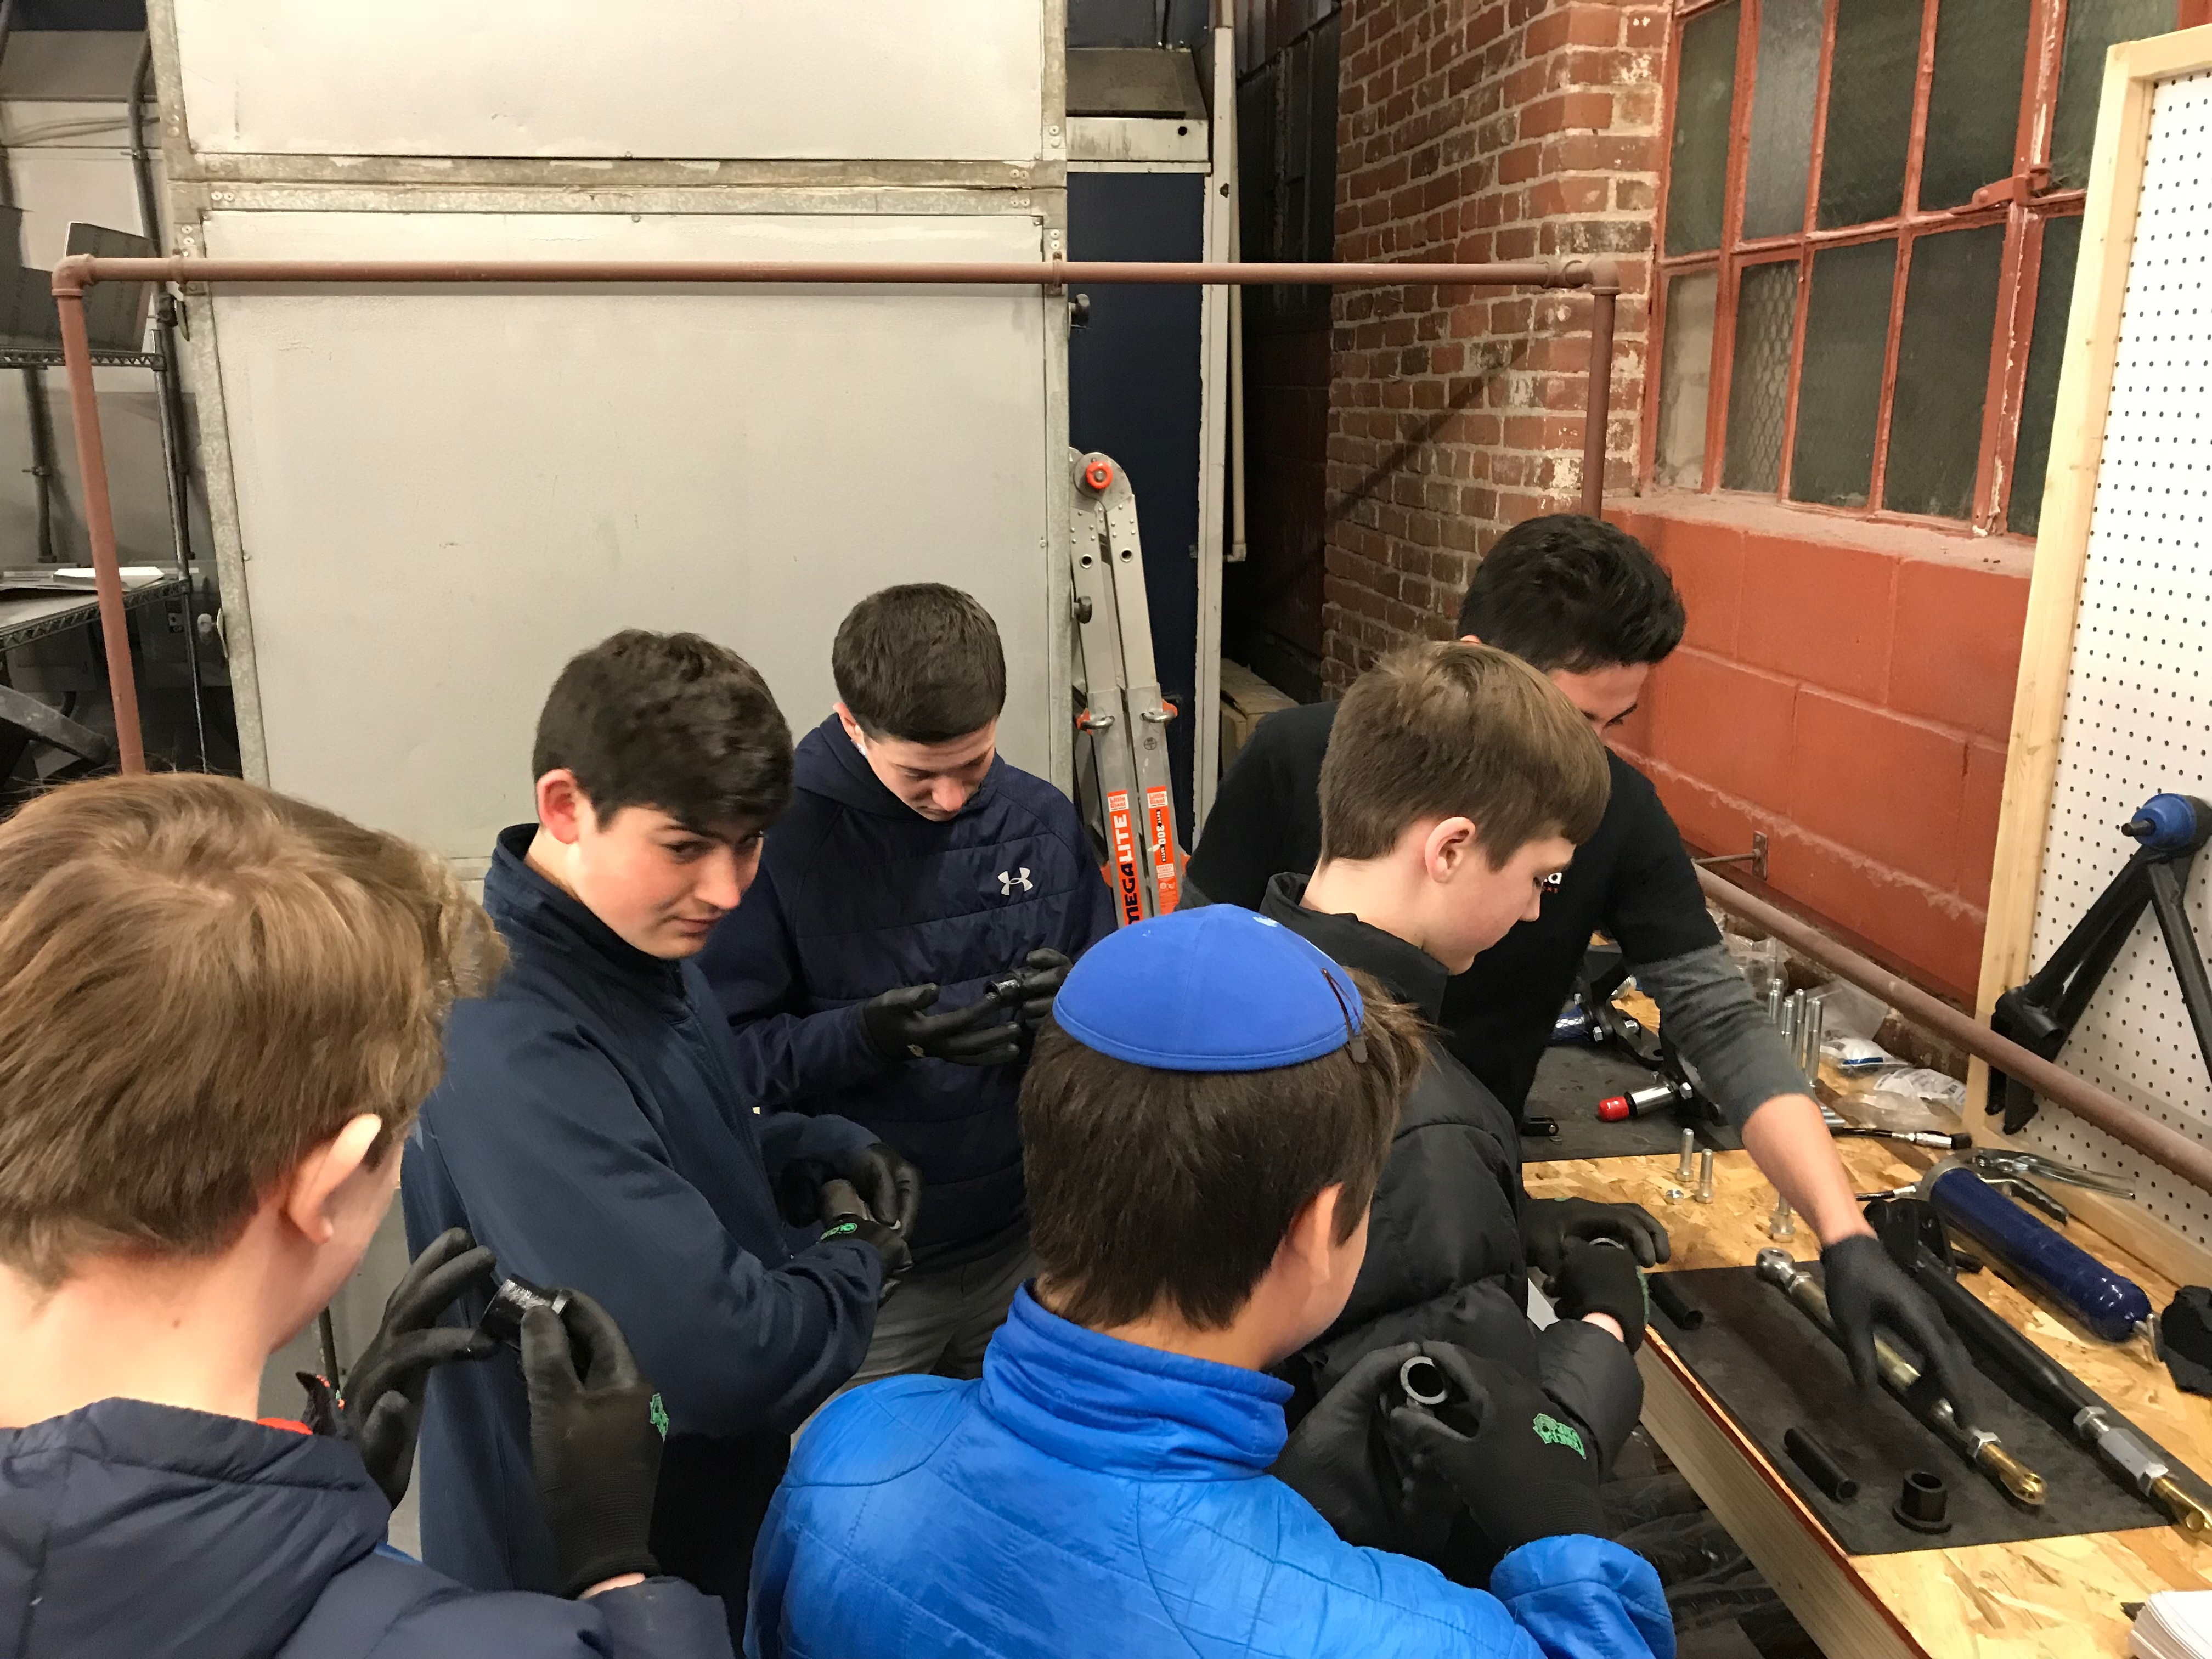 TSS HOT ROD: The sum of our parts! Week 7 – The Southport School